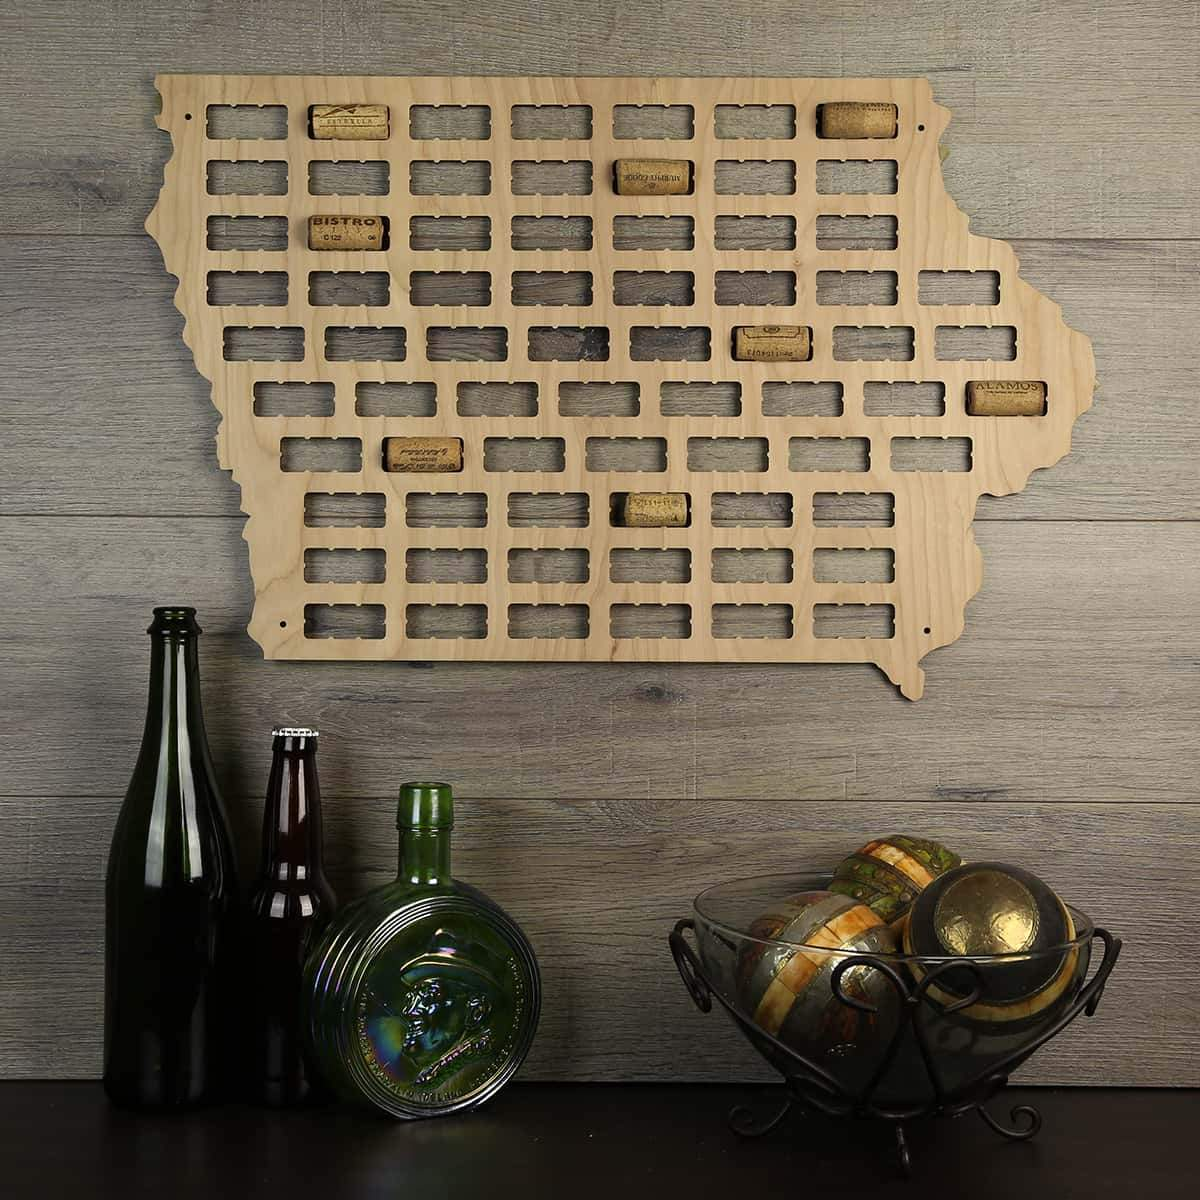 Torched Products Wine Cork Map Iowa Wine Cork Map (778970988661)